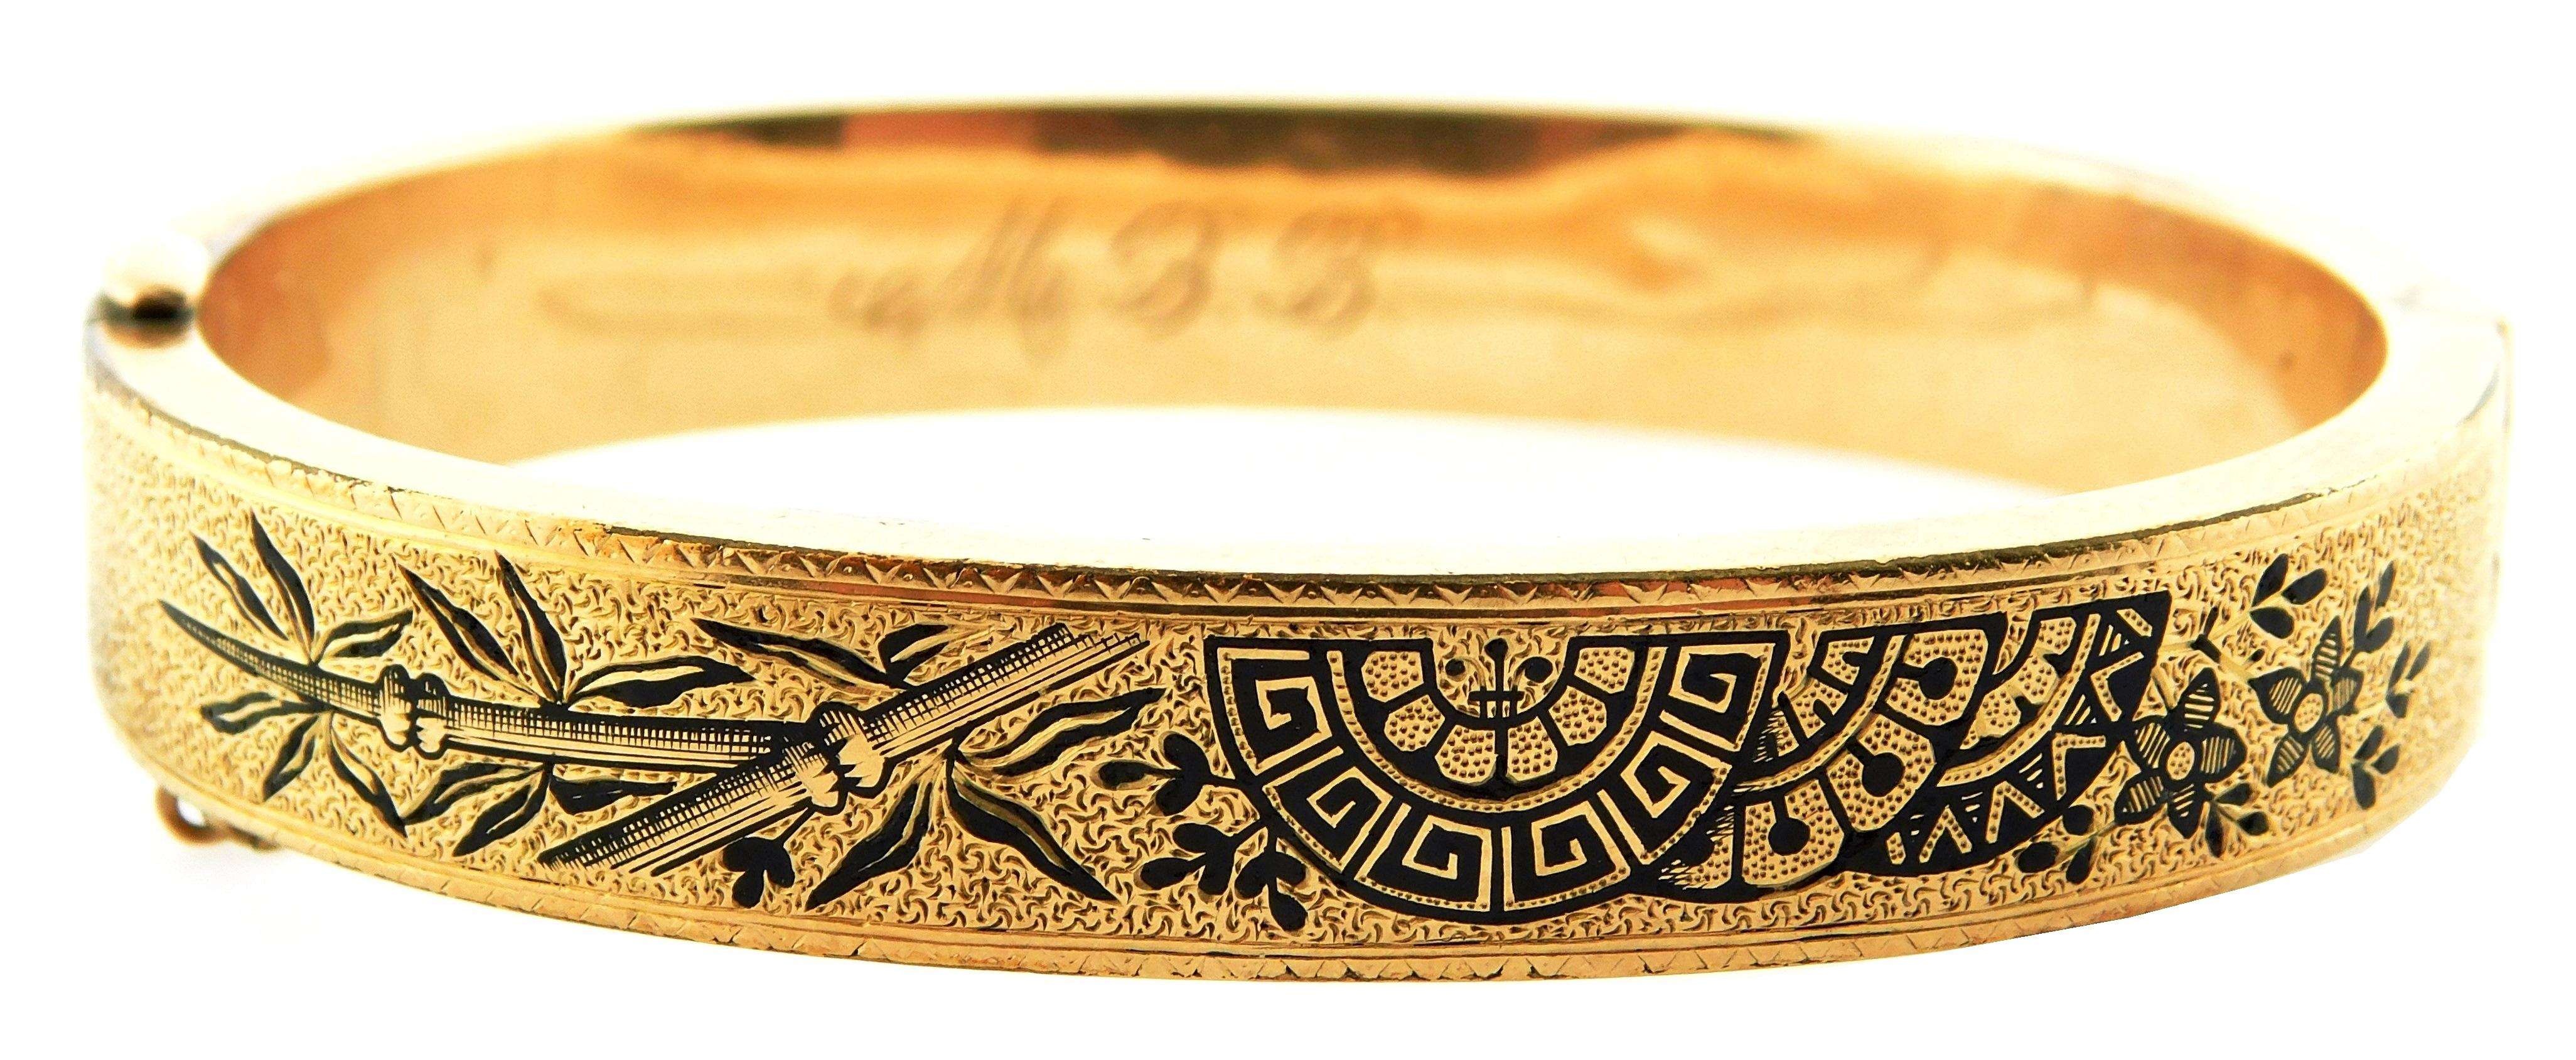 JEWELRY: 14K Victorian hinged bangle bracelet with safety chain: tested 14K yellow gold with engraved and black enamel design, width...